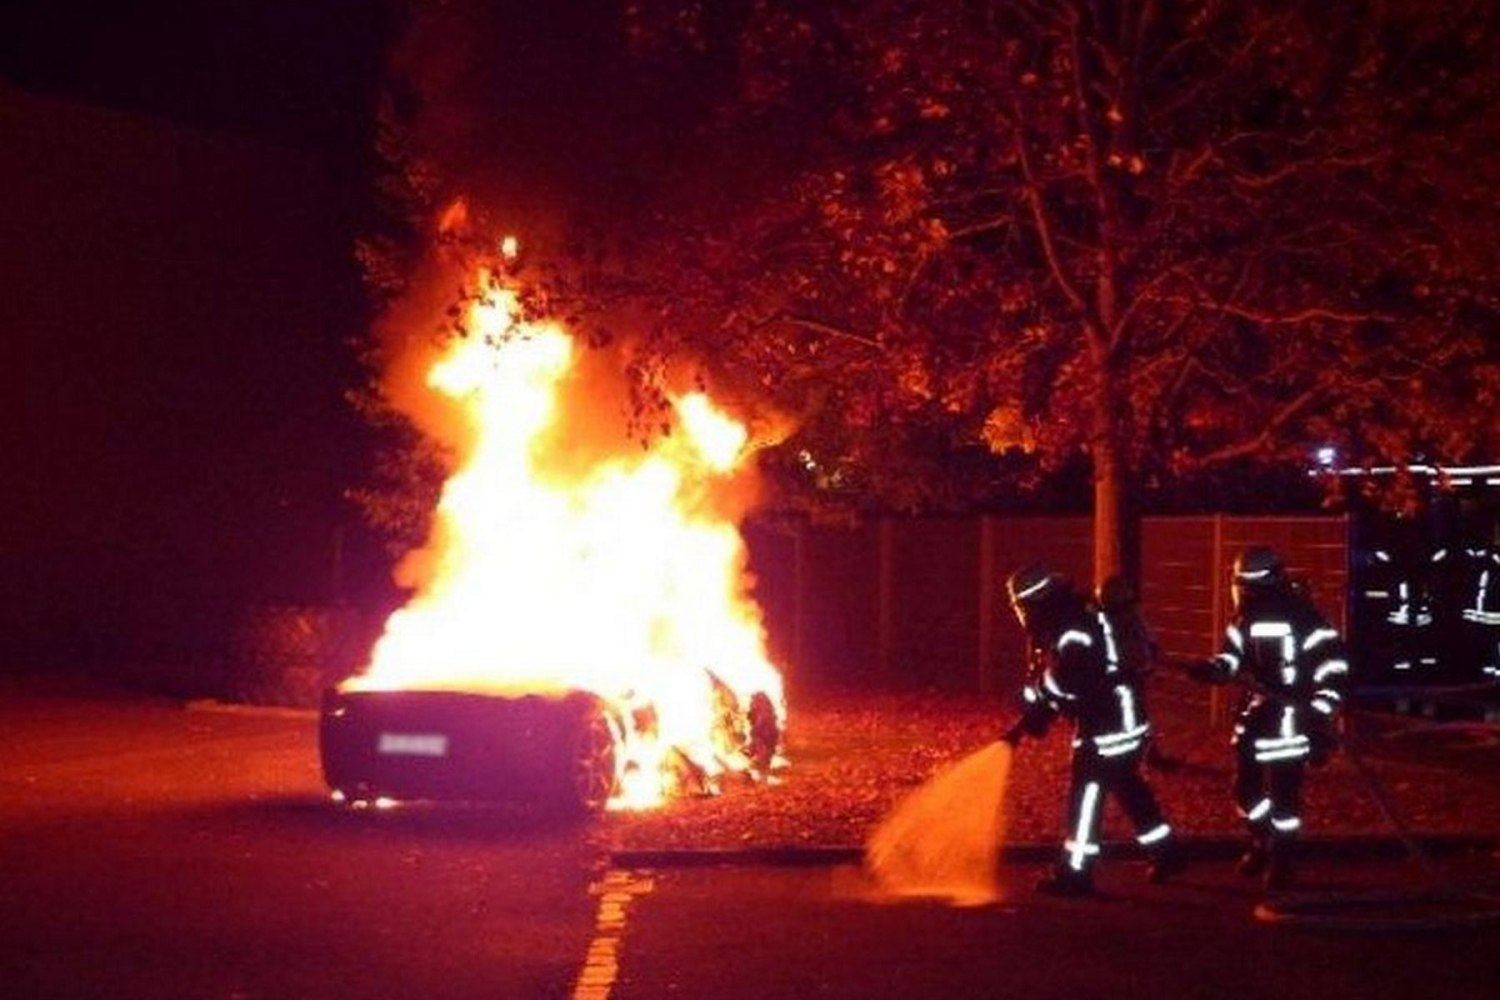 Teenager sets fire to Ferrari 458 – because he wanted a Speciale A